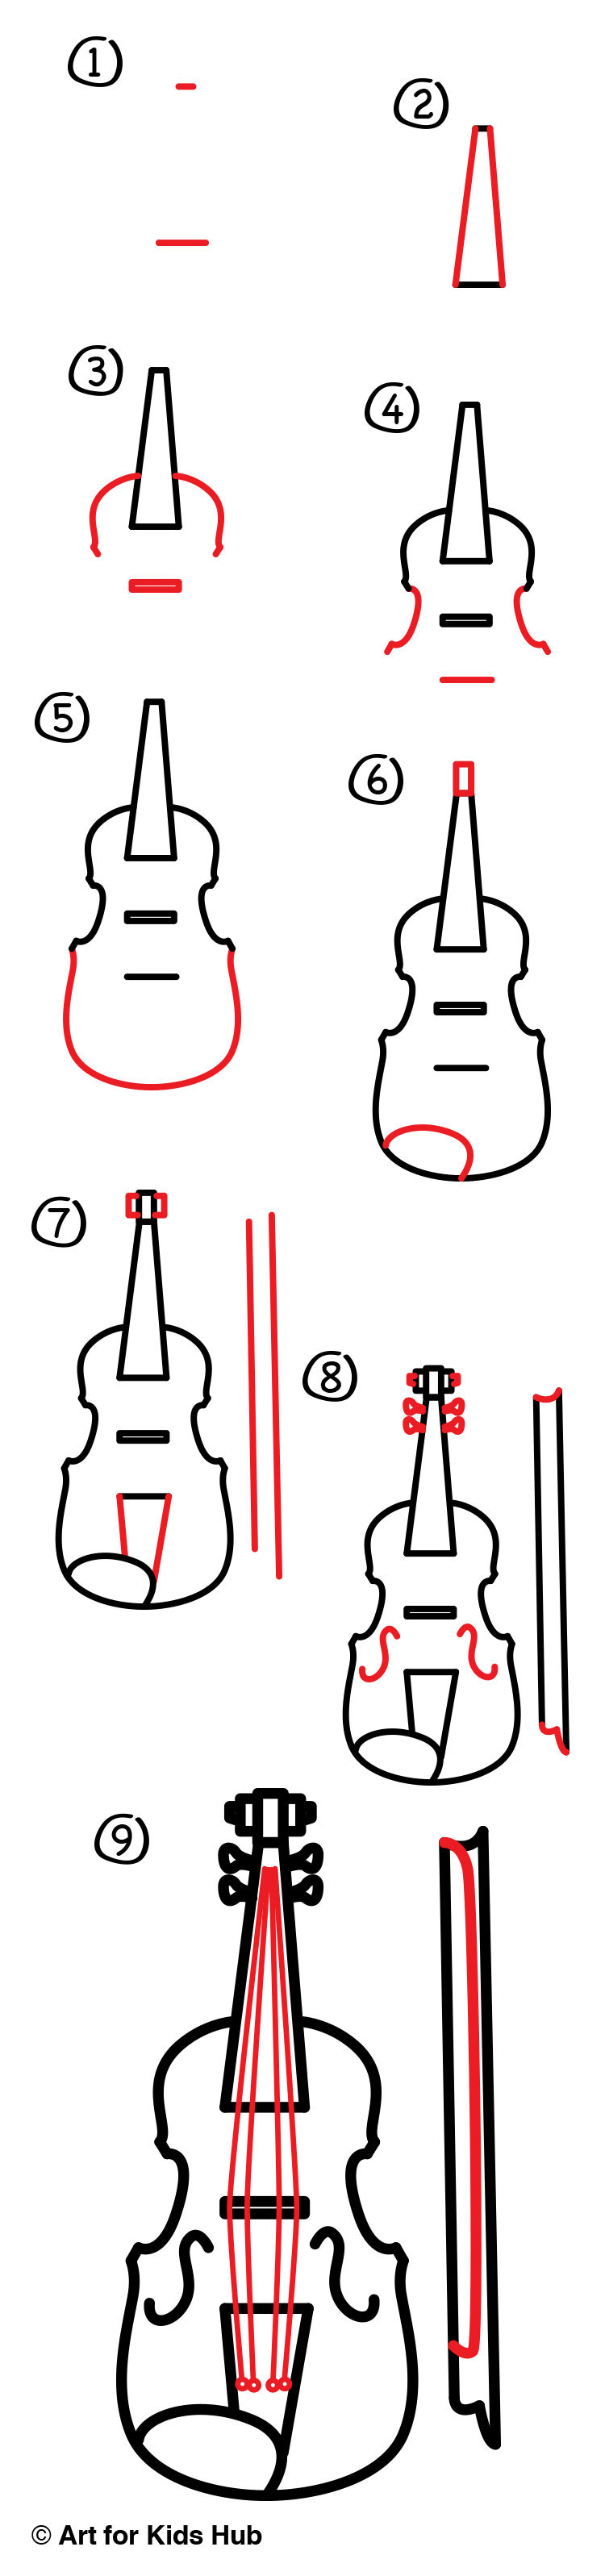 750x3194 How To Draw A Violin